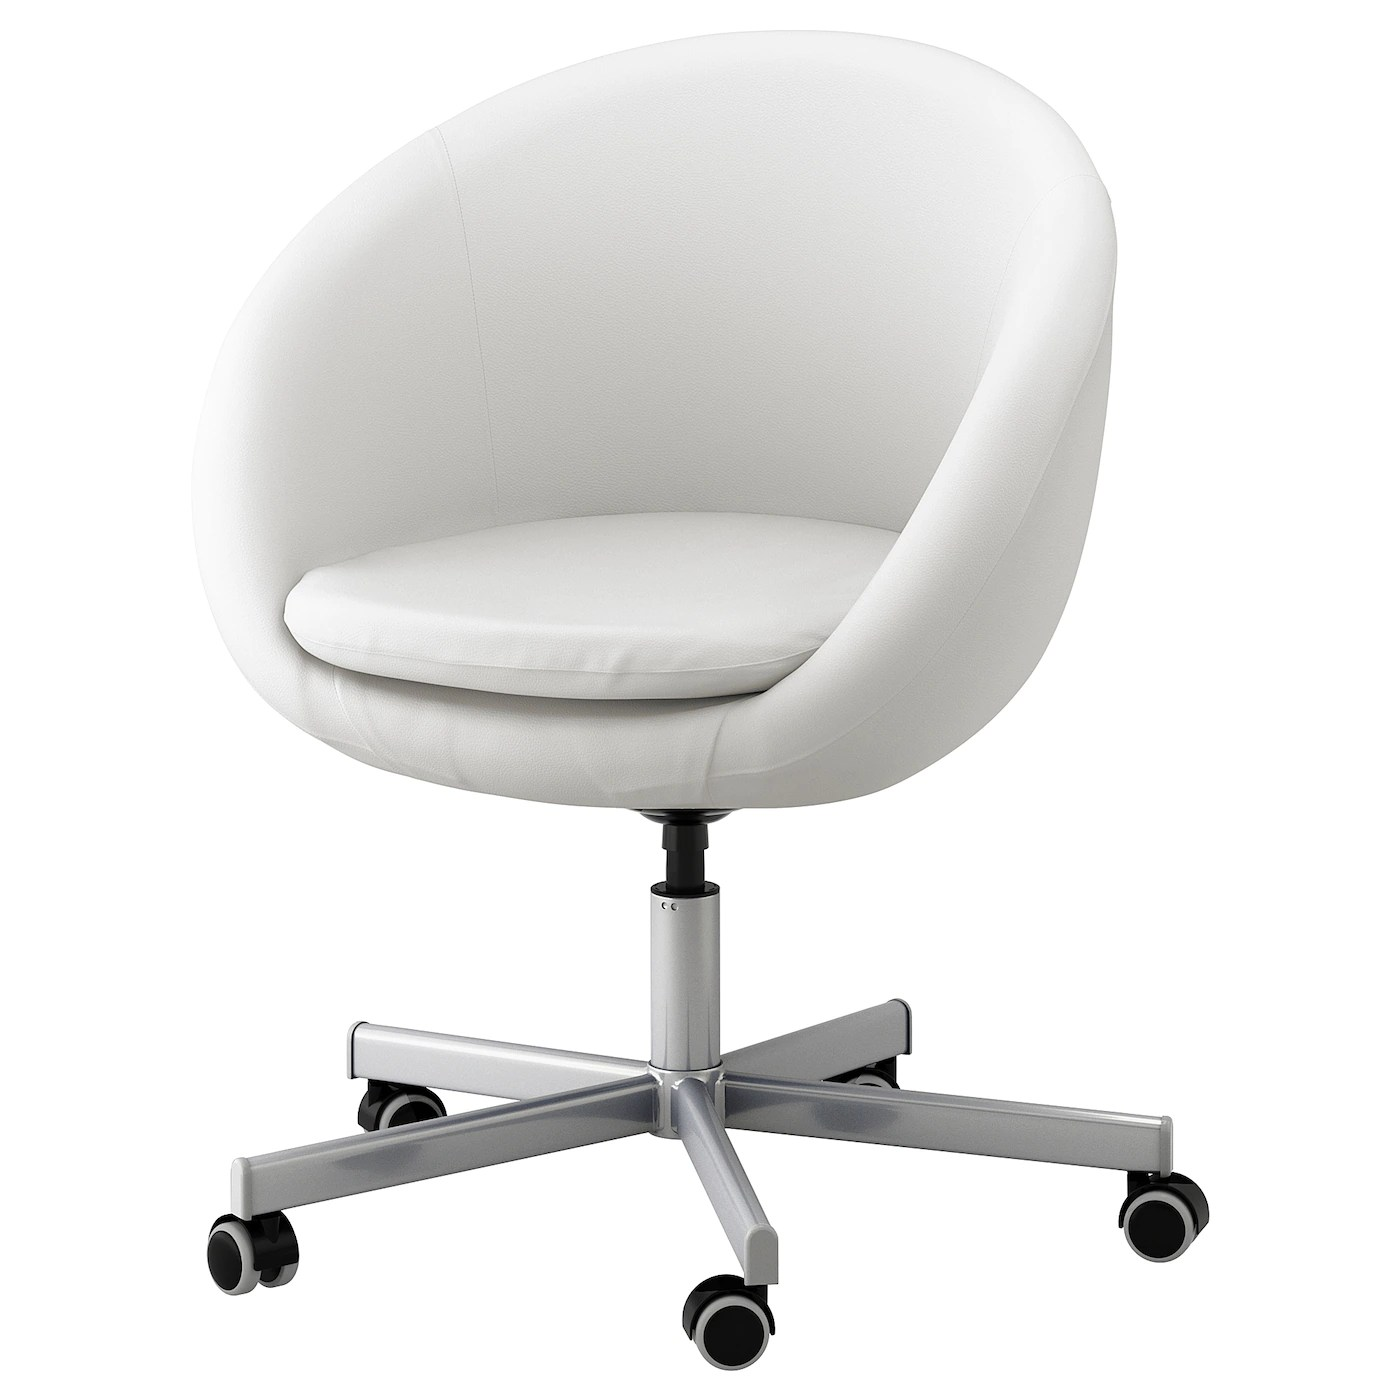 Office Chairs White Skruvsta Swivel Chair Idhult White Ikea